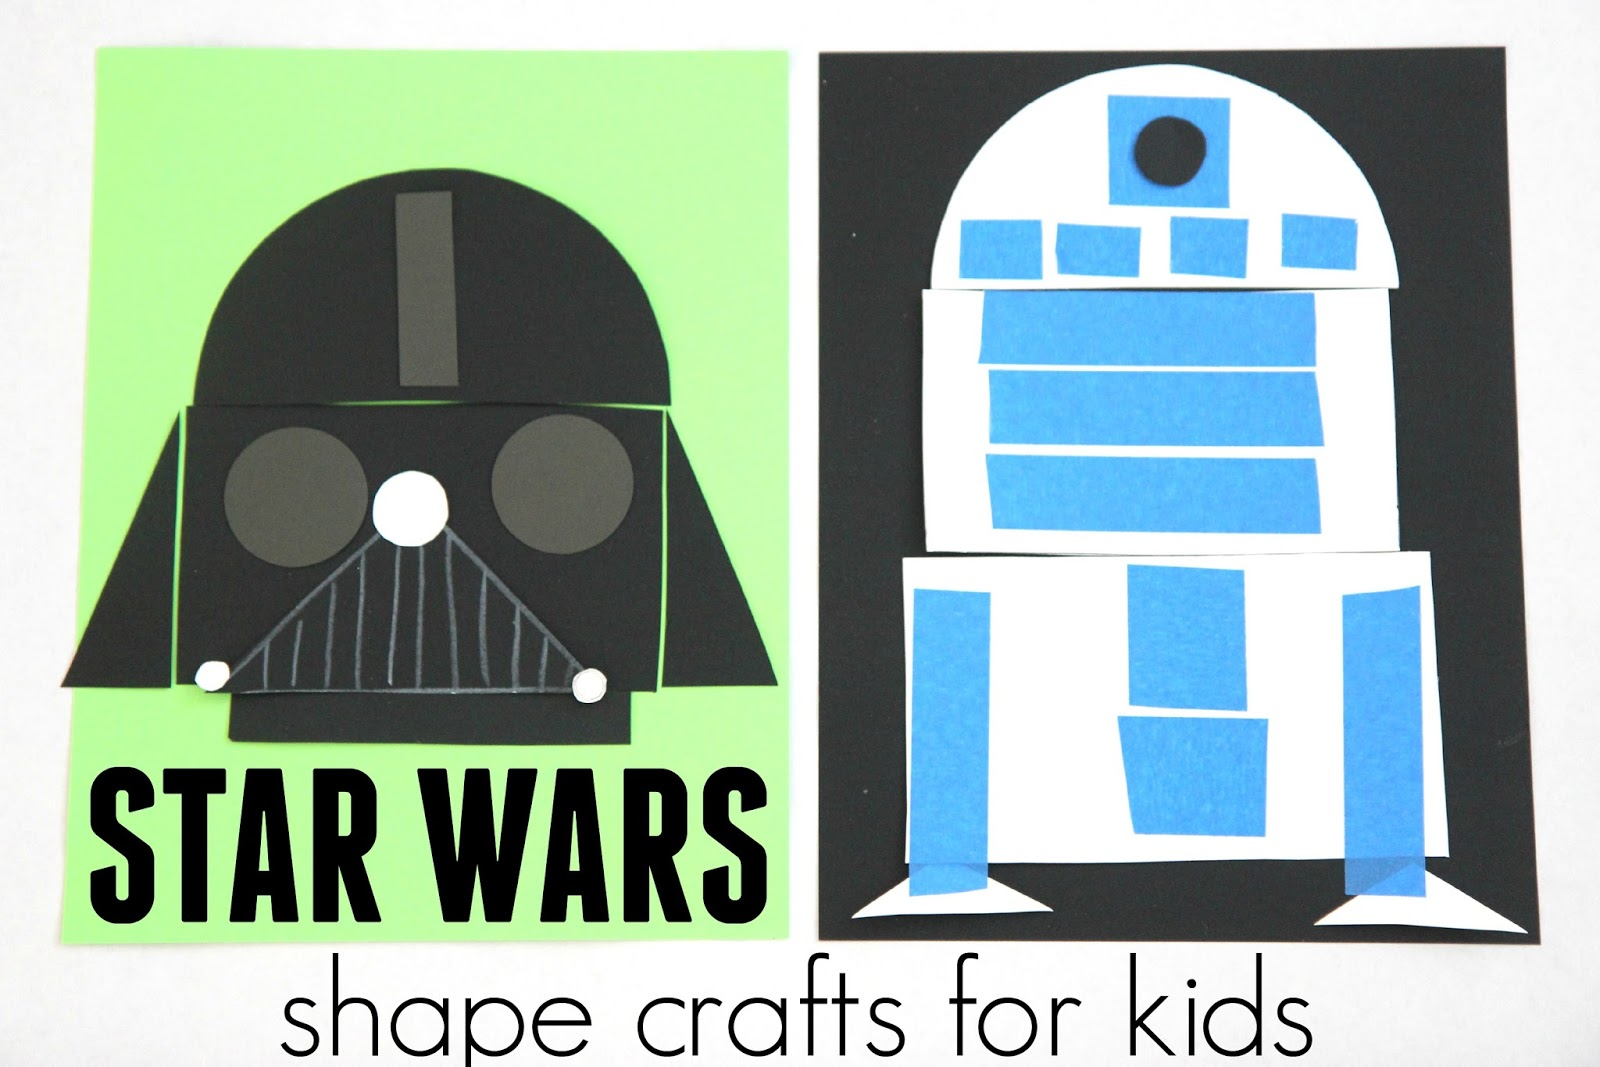 Toddler Approved!: Star Wars Shape Crafts And Lightsaber